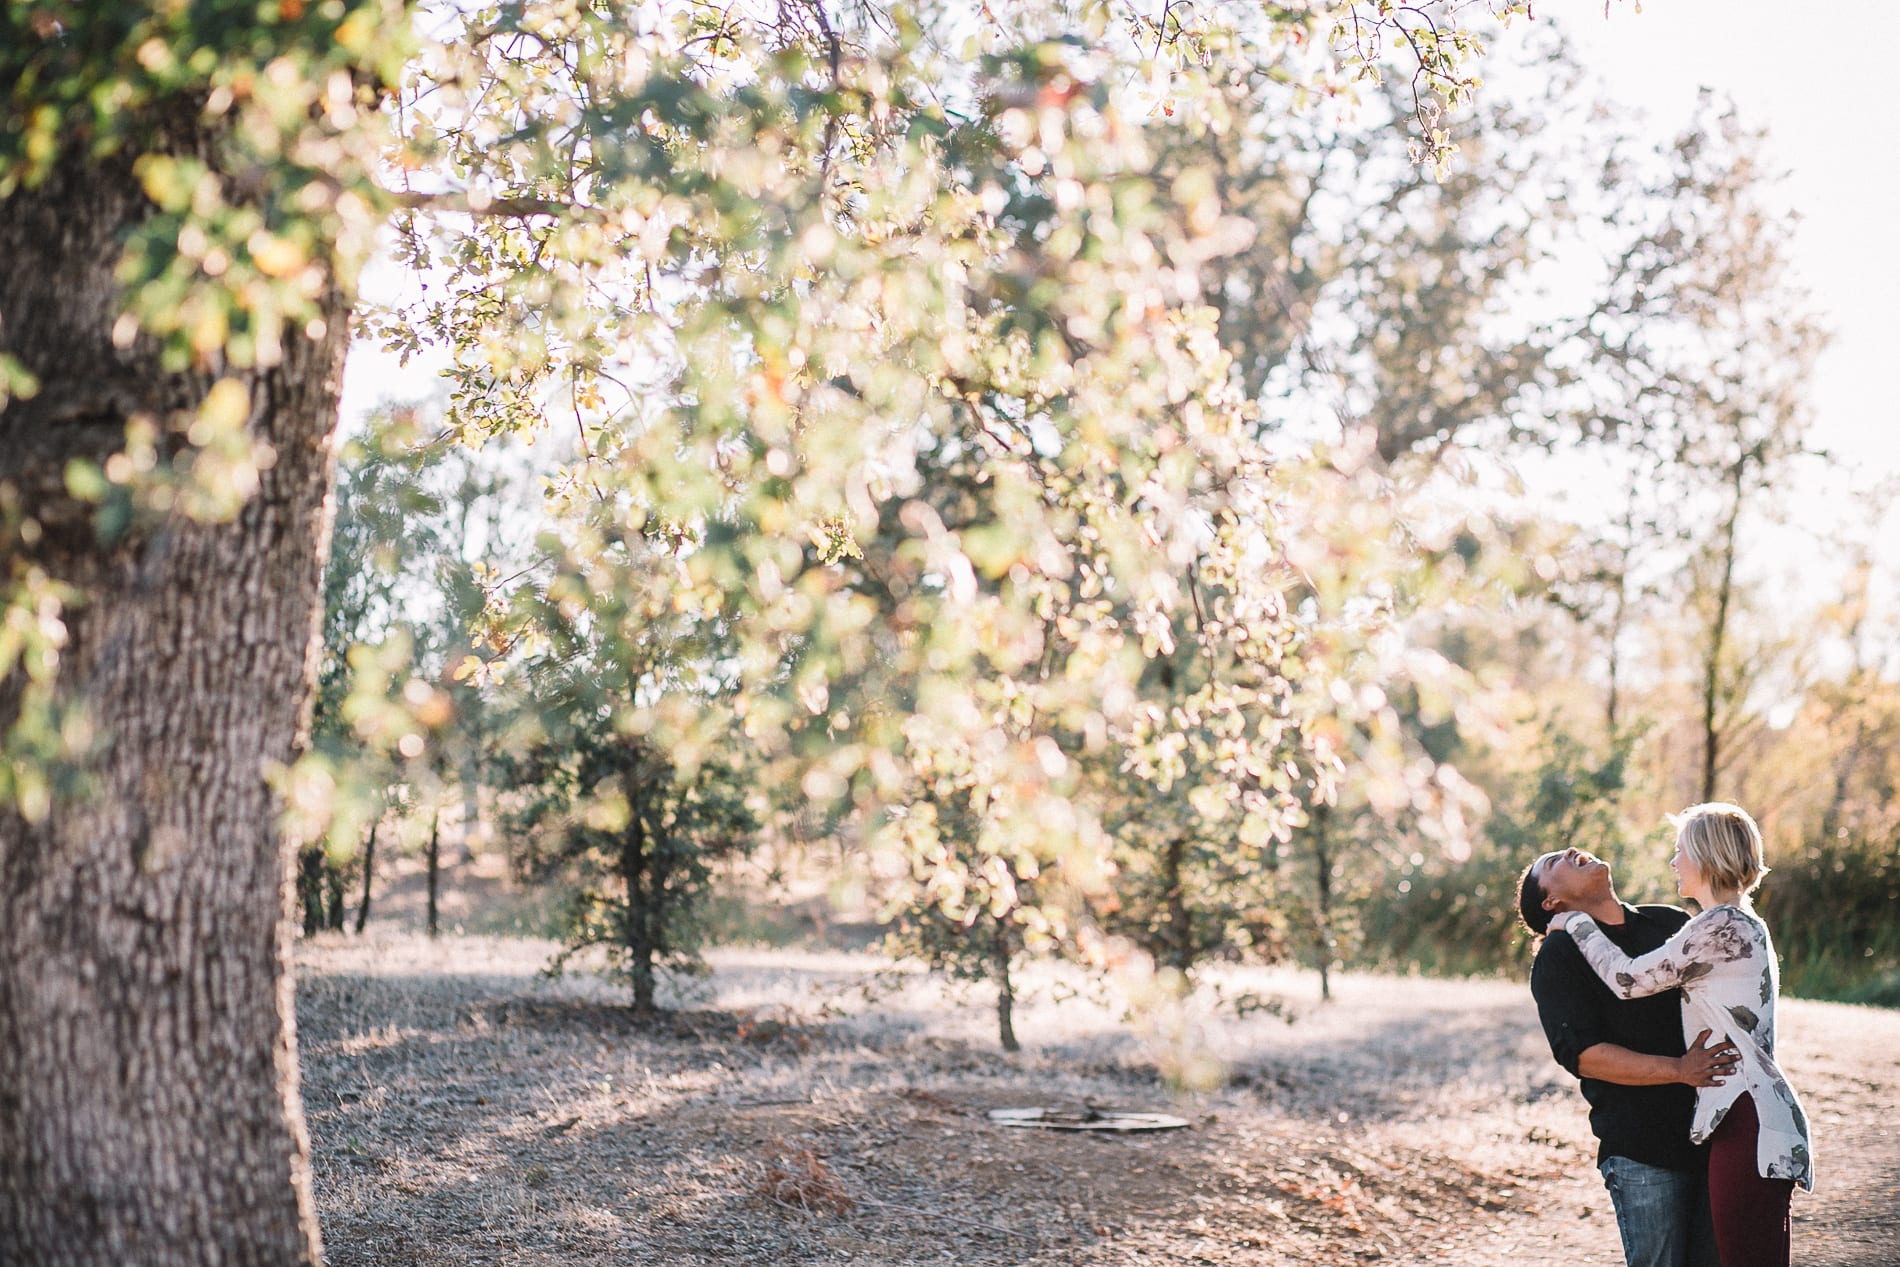 redding-lema-ranch-engagement-photo-8